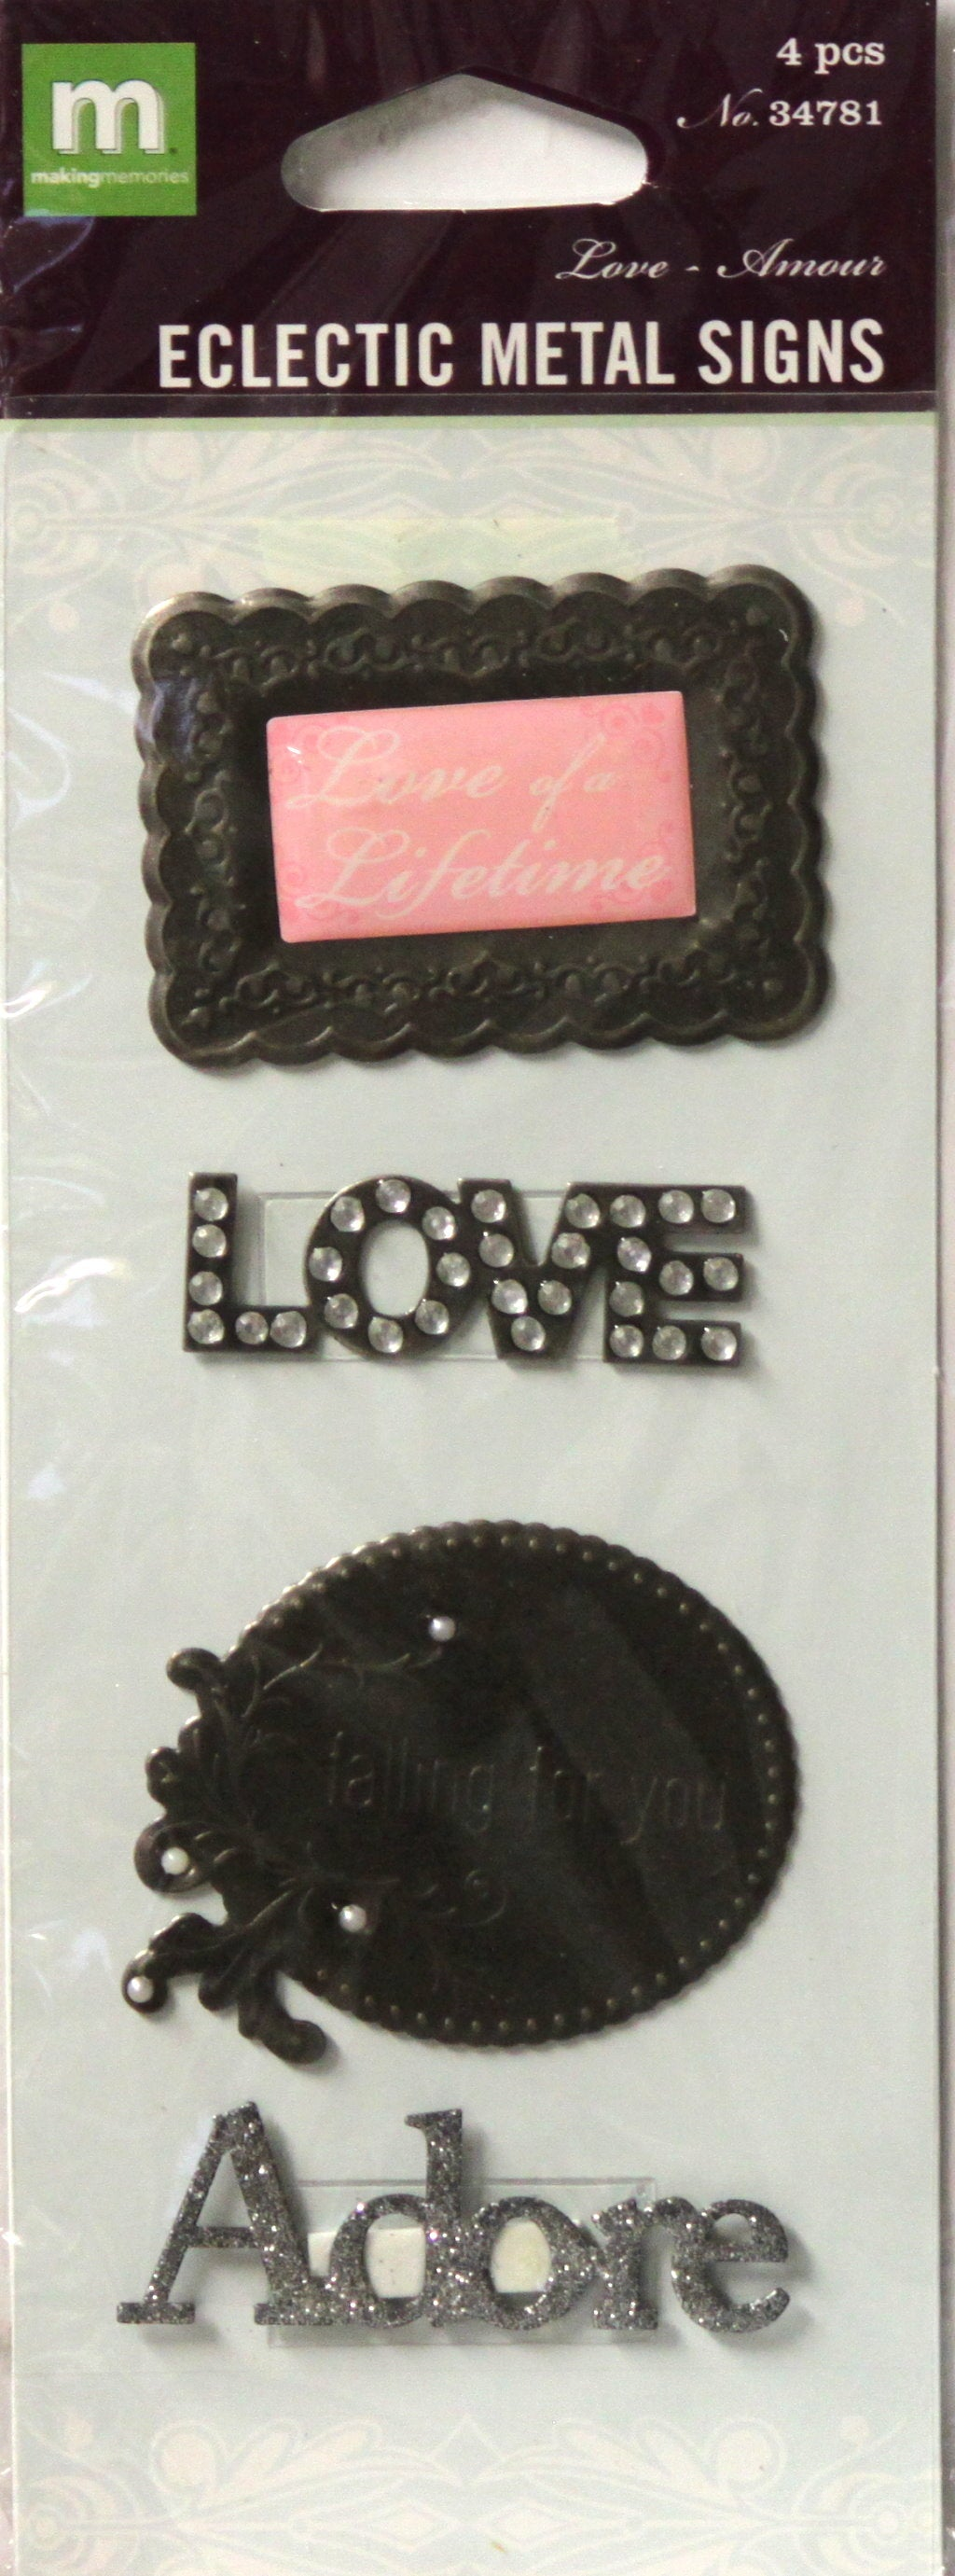 Making Memories Eclectic Metal Signs Love Embellishments